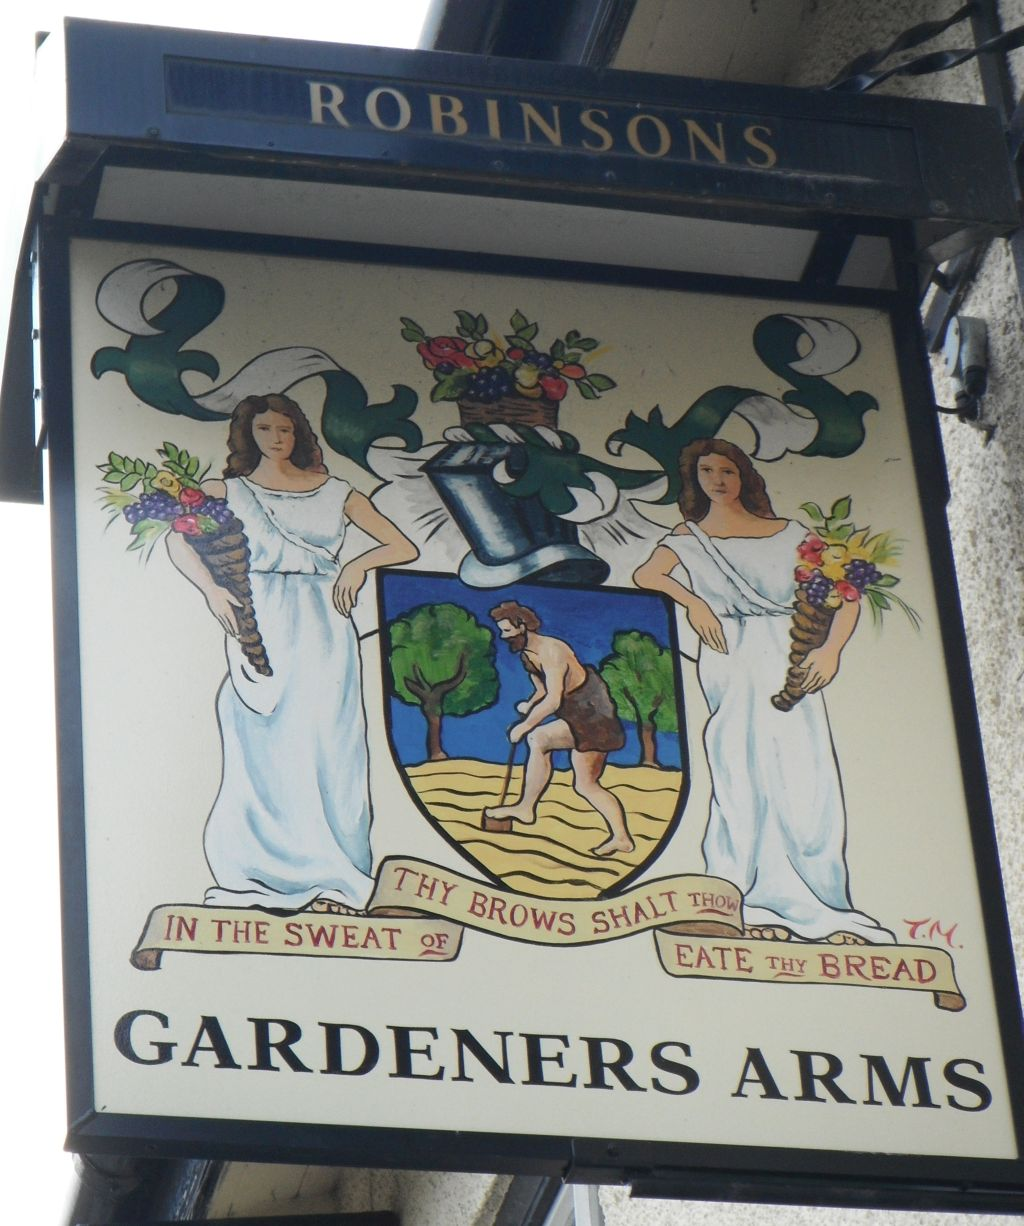 Photo taken by me – pub sign for The Gardeners Arms - Wythenshawe Manchester